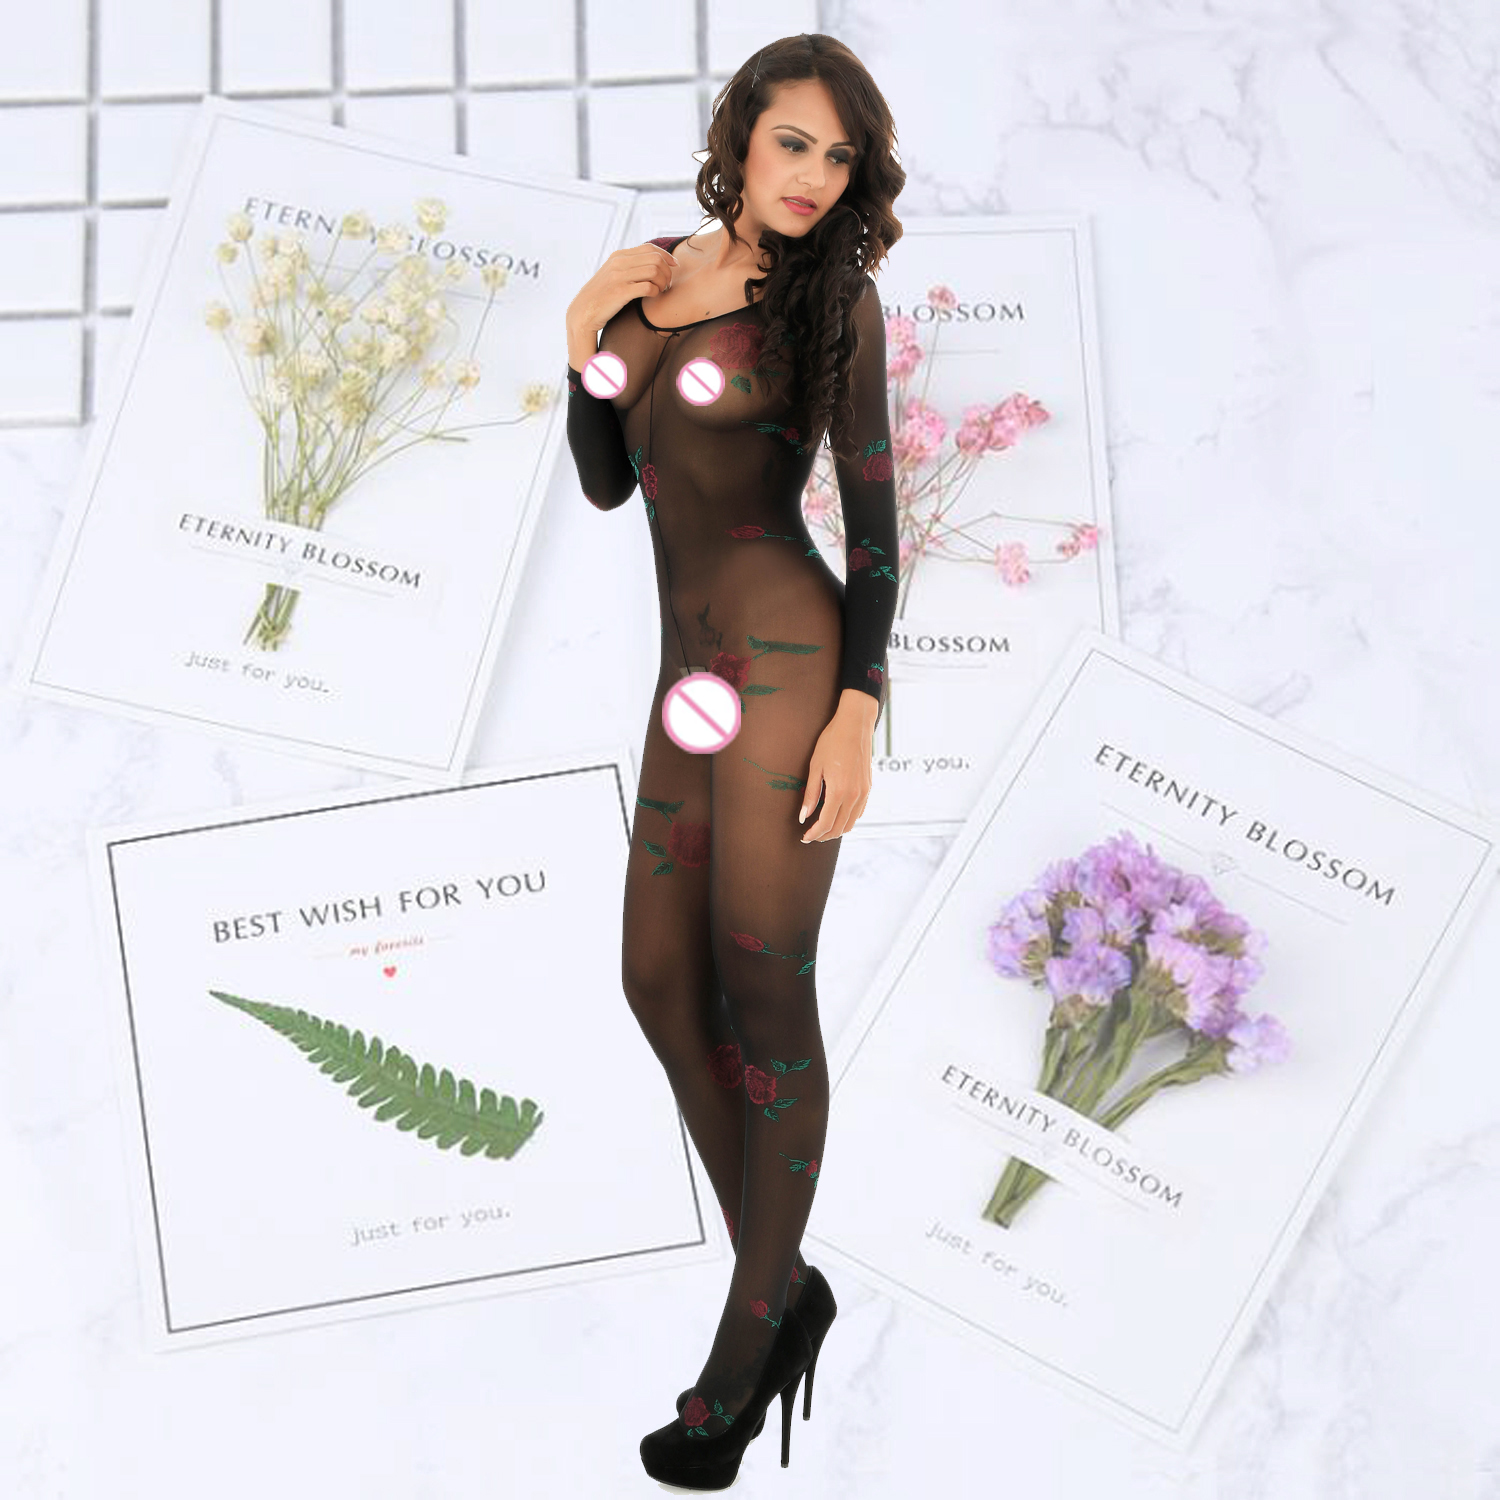 Women printed flower Lingerie Sexy Hot Erotic Open Crotch Body silk Stockings Sexy Teddy Babydoll Erotic Underwear in Teddies Bodysuits from Novelty Special Use